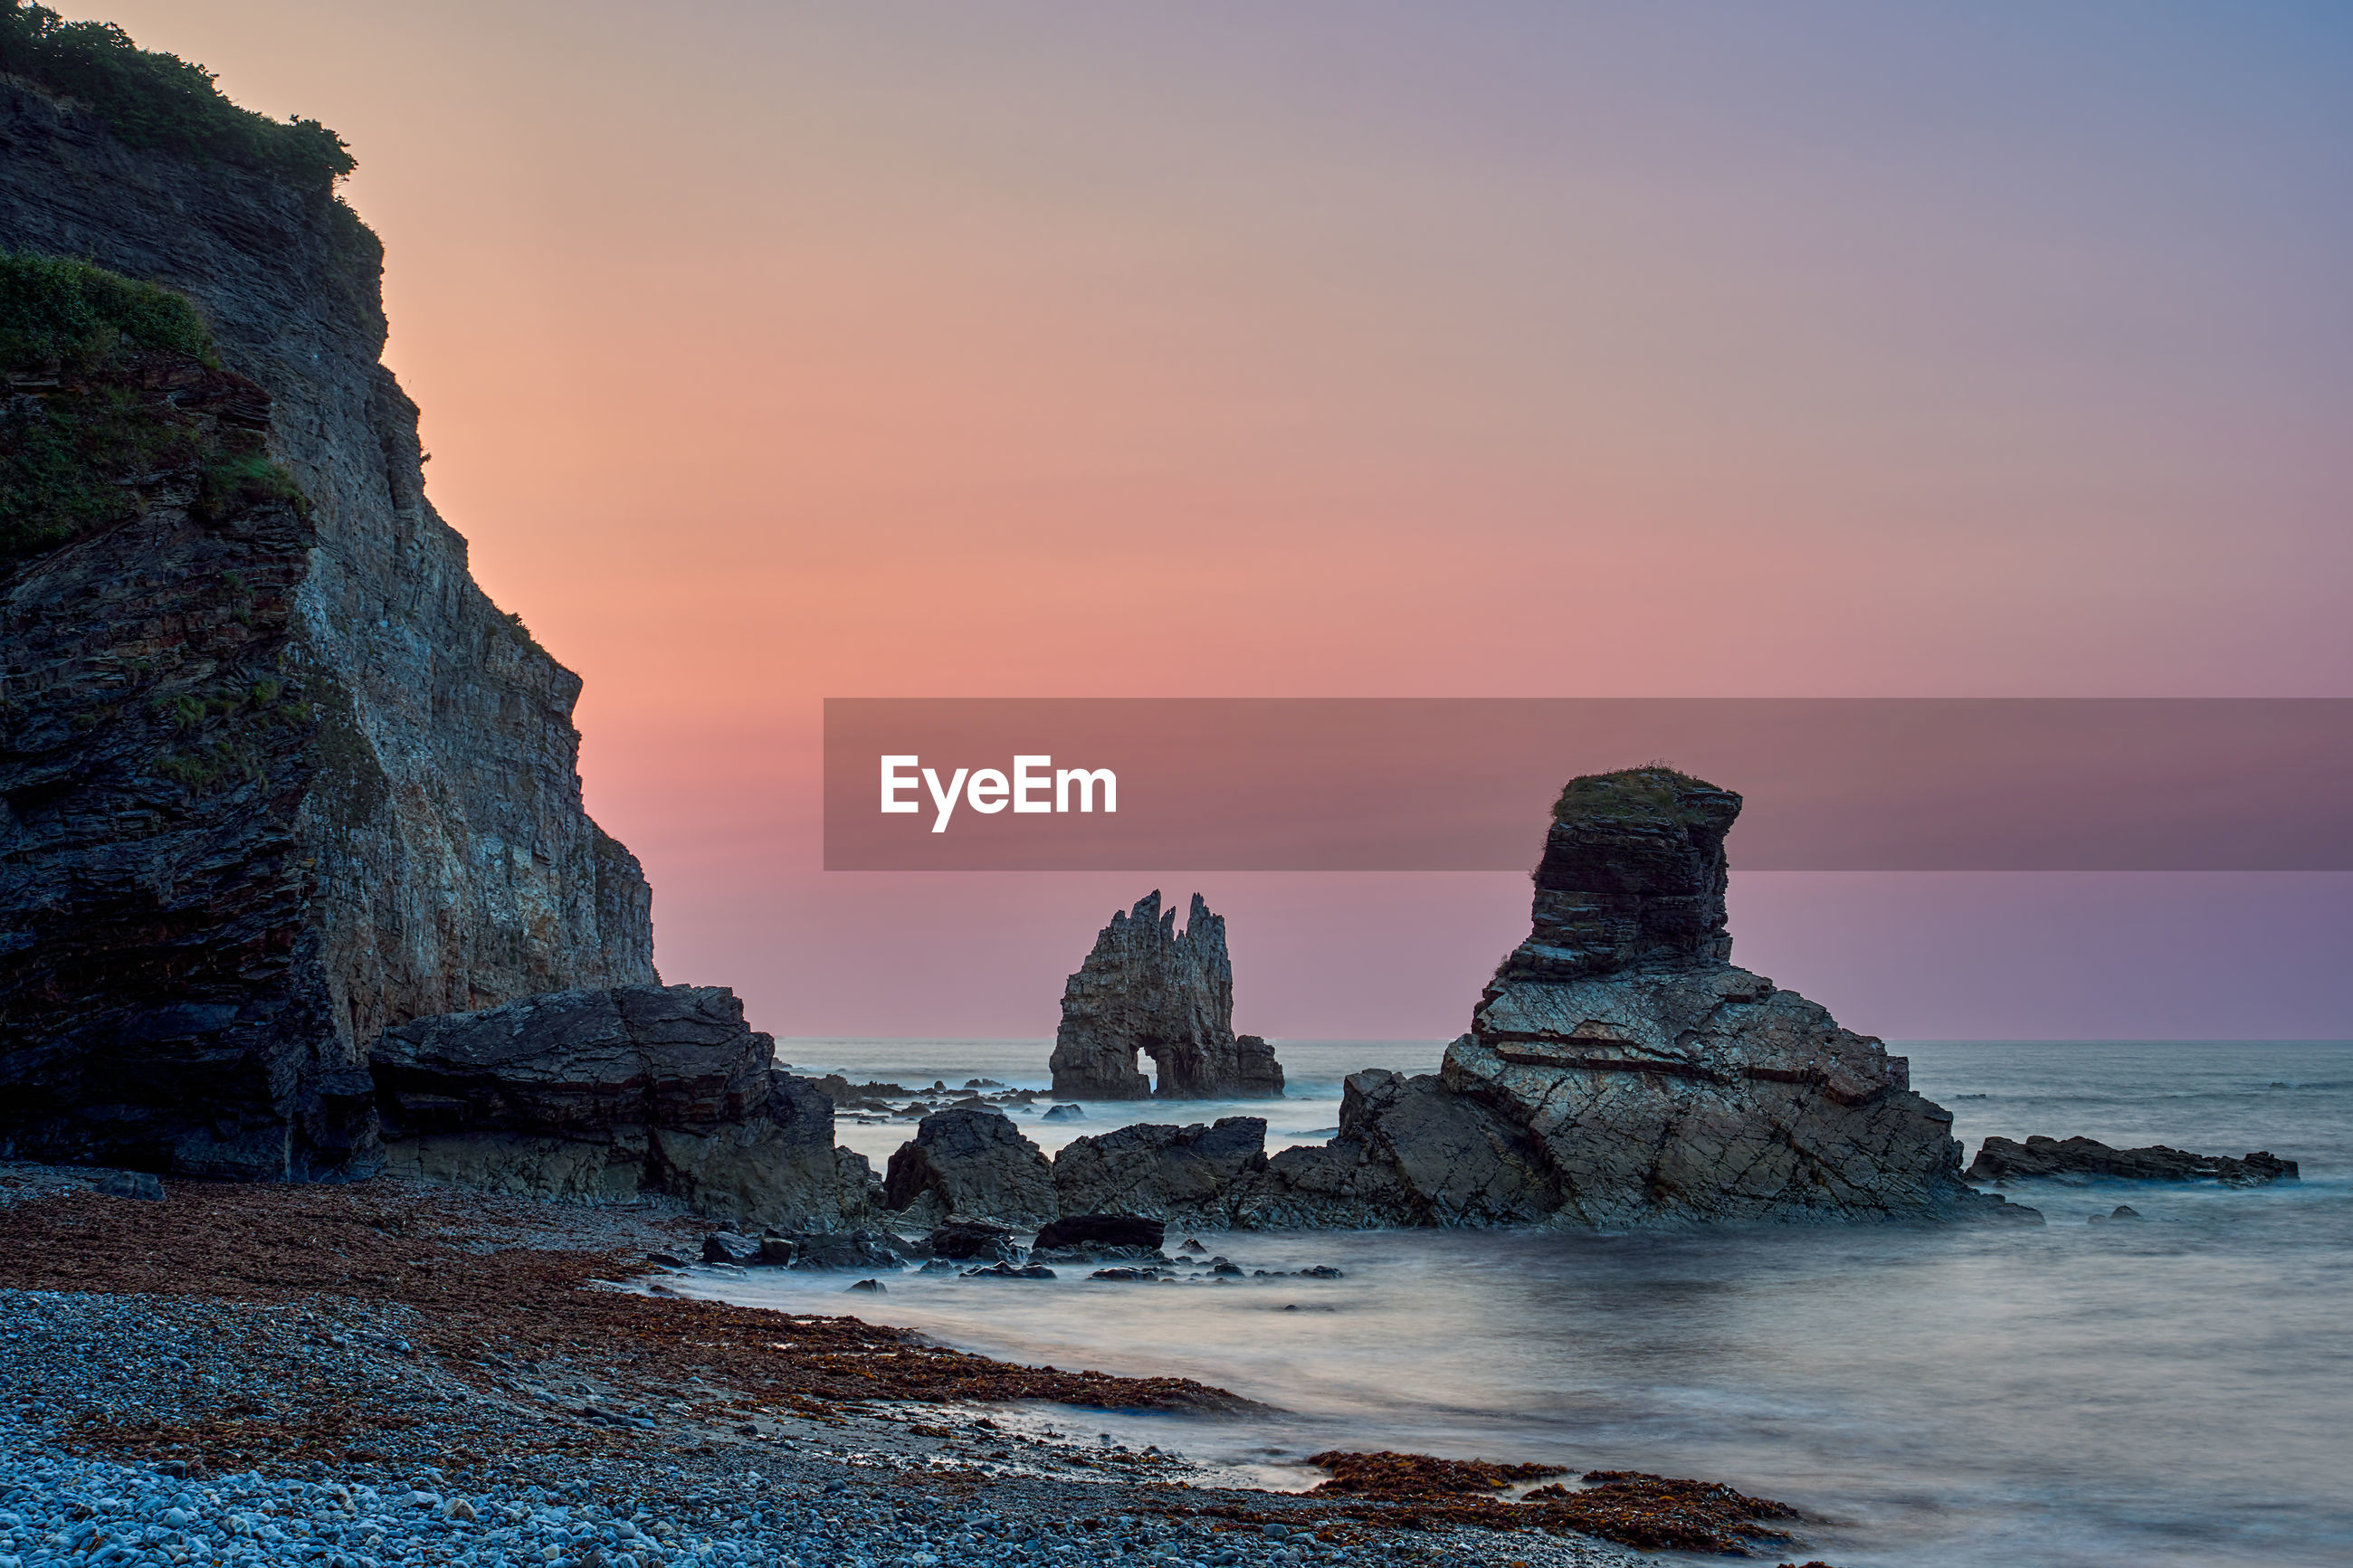 ROCK FORMATION ON BEACH AGAINST SKY AT SUNSET